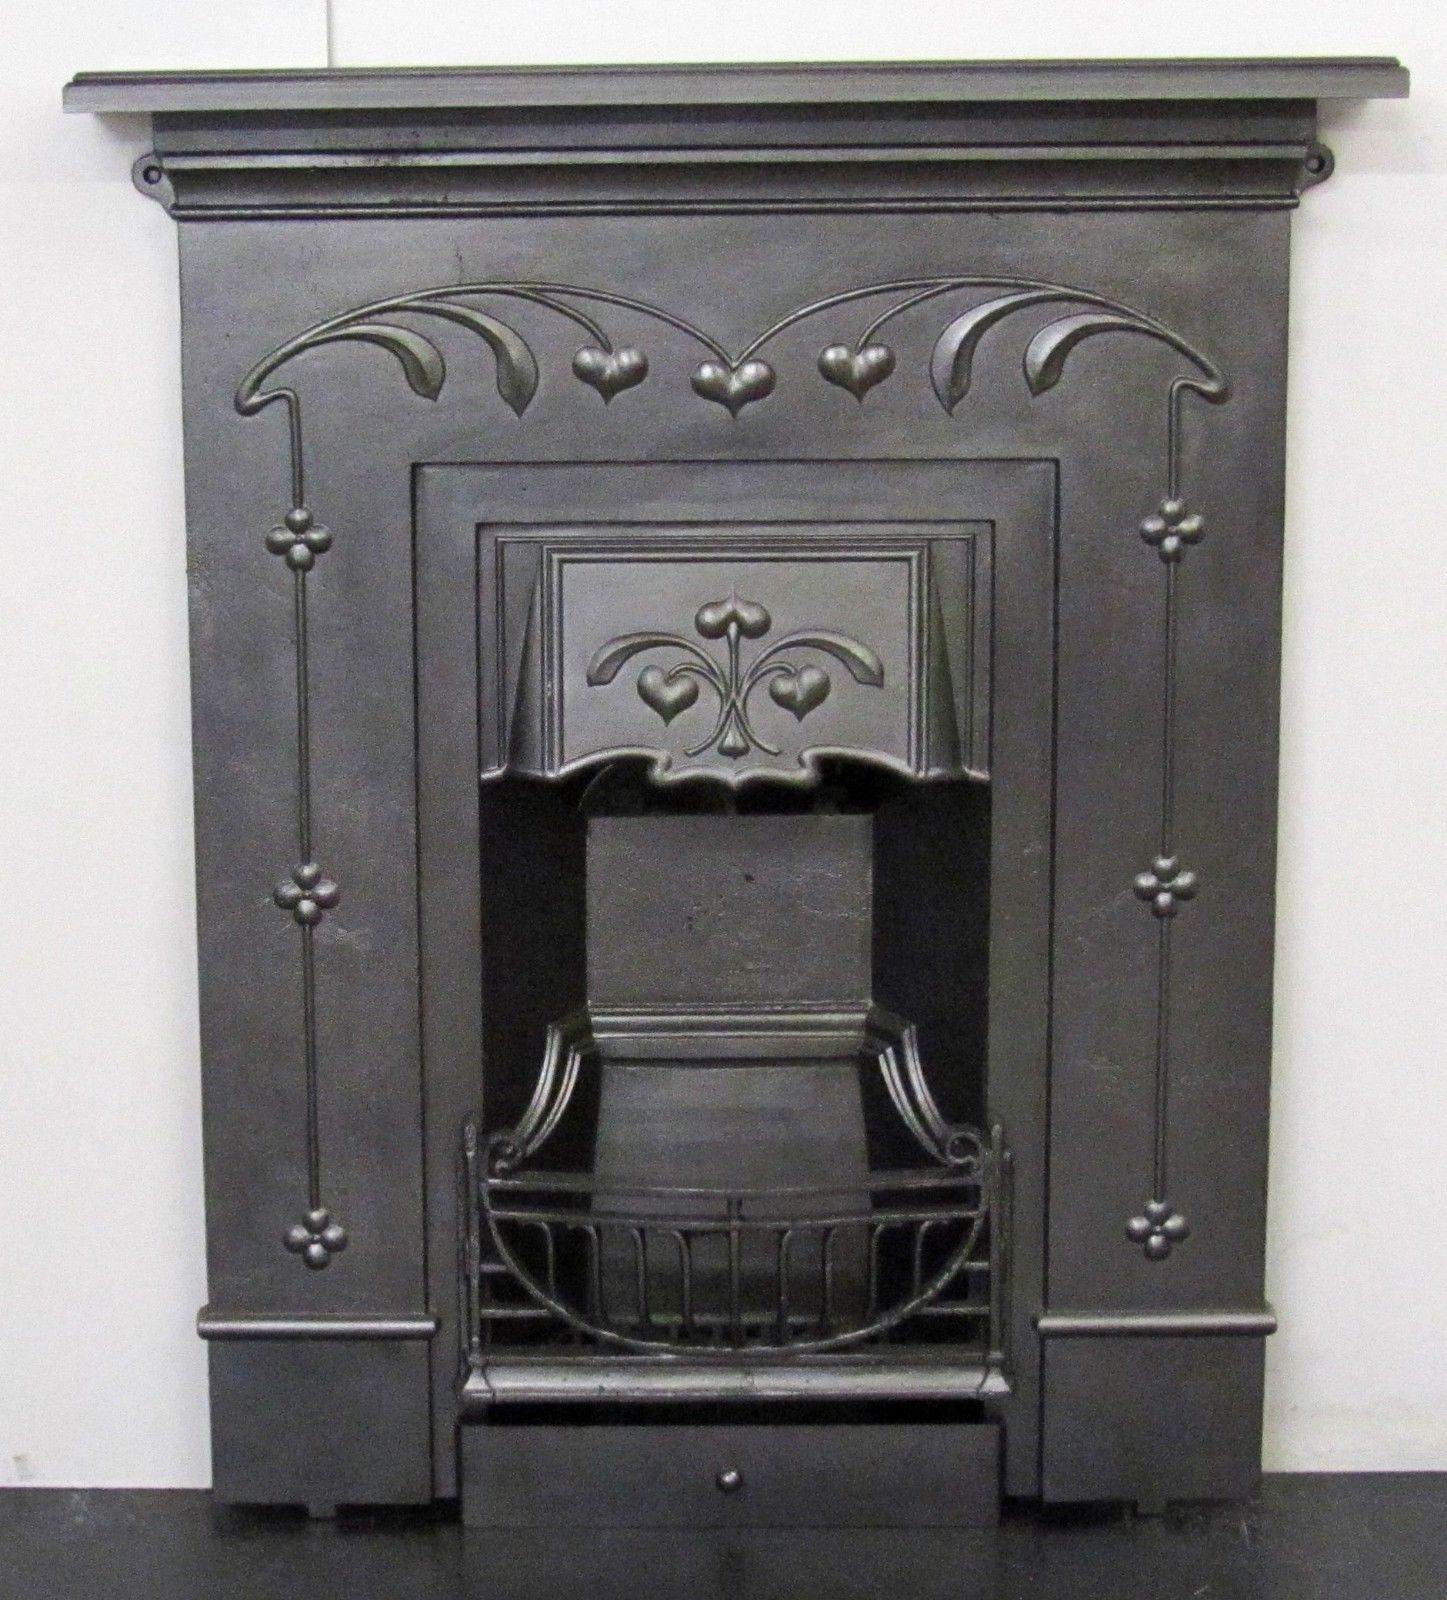 Original Antique Art Nouveau Cast Iron Fireplace Antique Fireplace Surround Antique Fireplace Art Nouveau